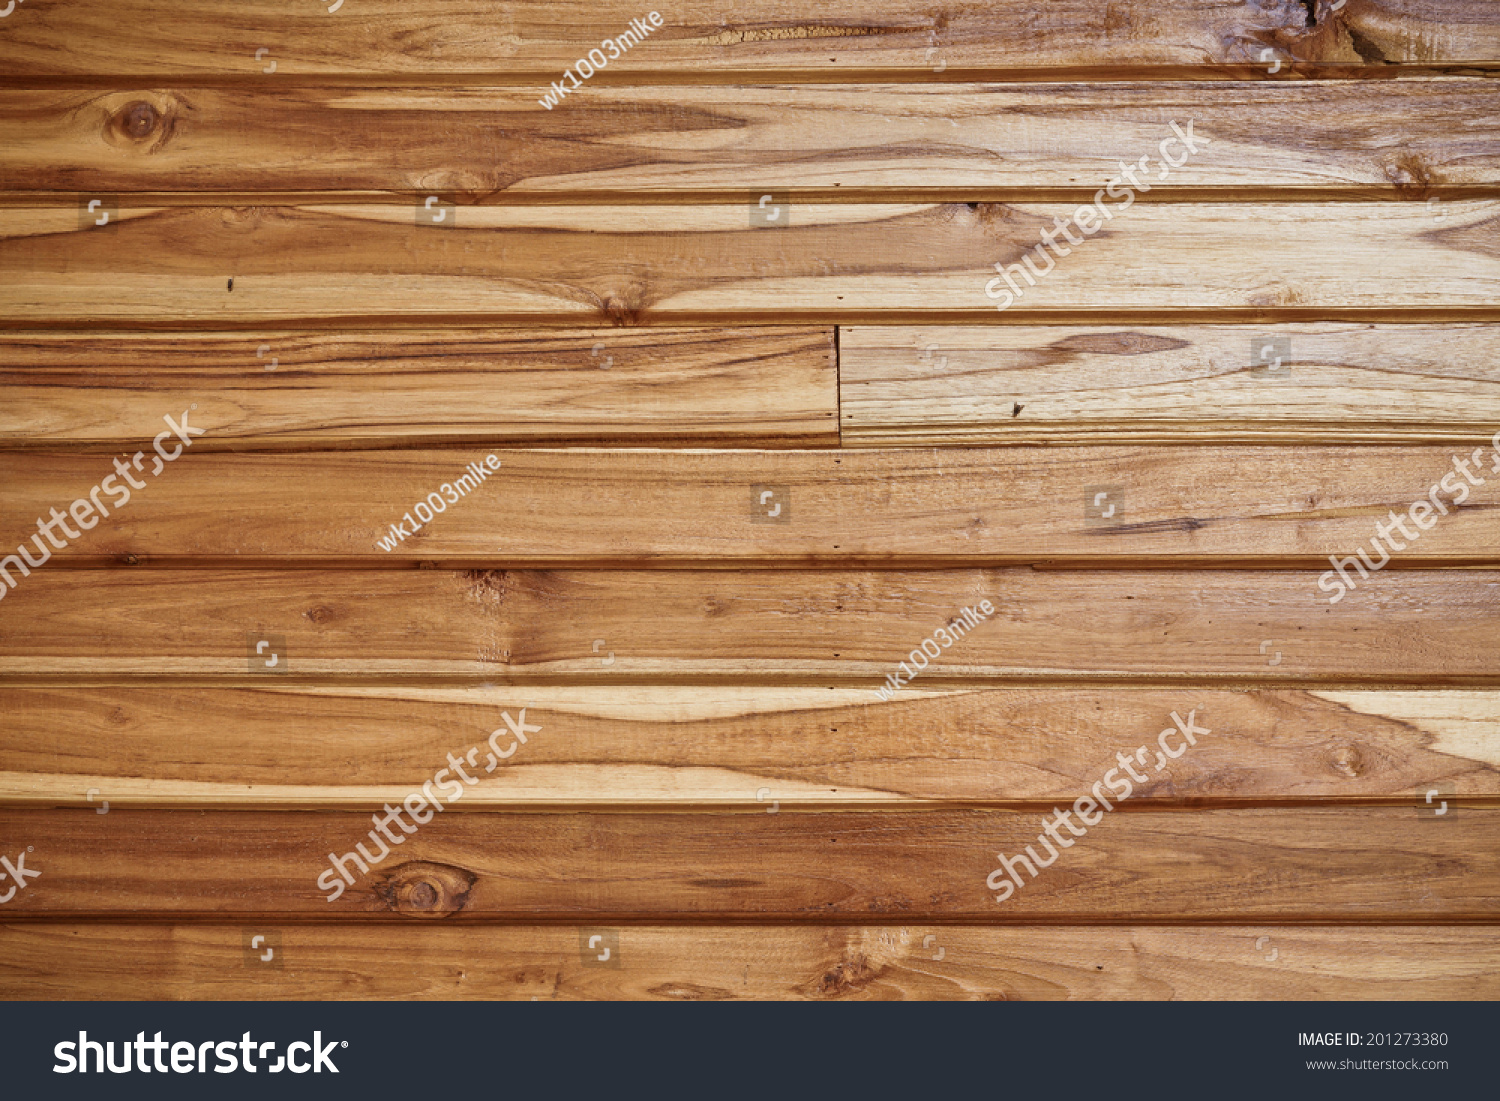 Teak Wandplank Teak Plank Wall Teak Wood Texture Stock Photo Edit Now 201273380